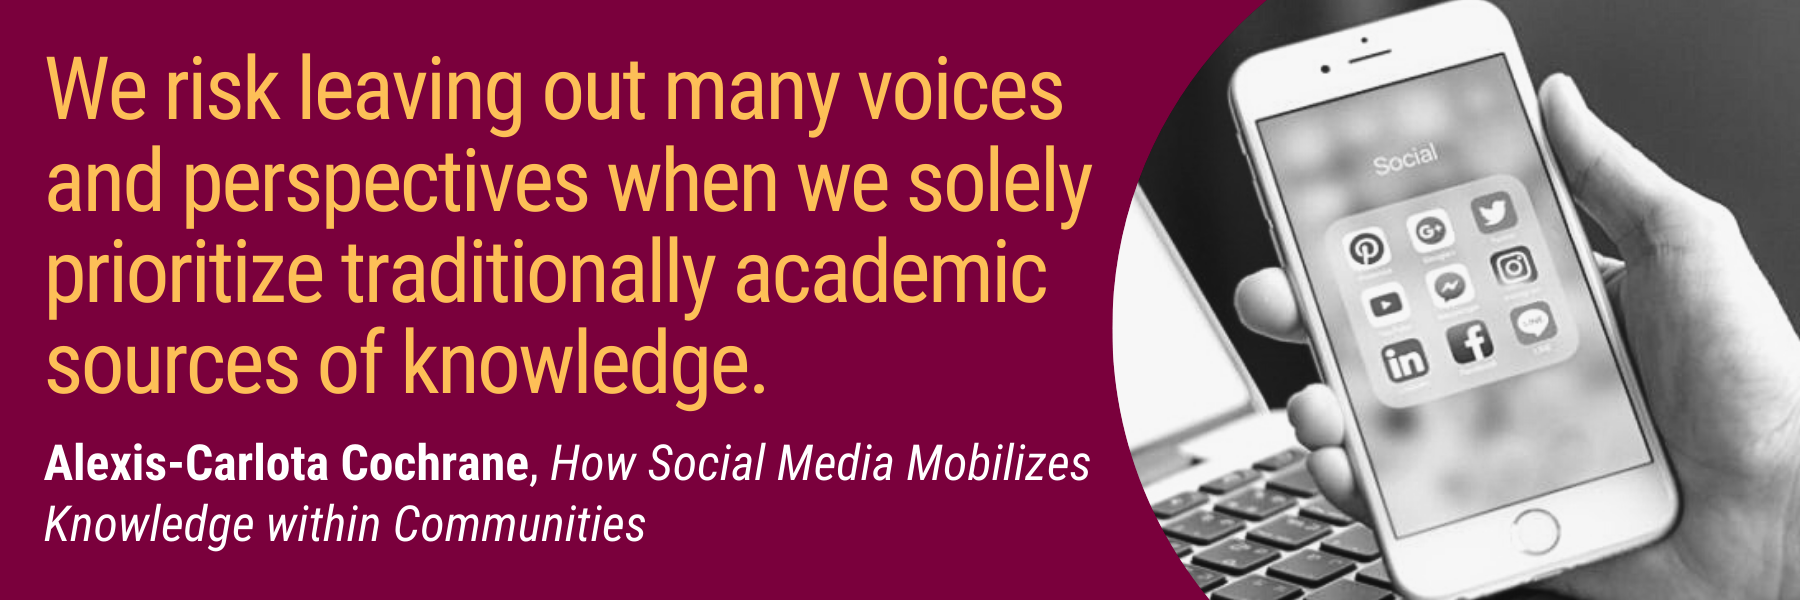 How Social Media Mobilizes Knowledge within Communities: A Case Study of Latinx Students in Ontario